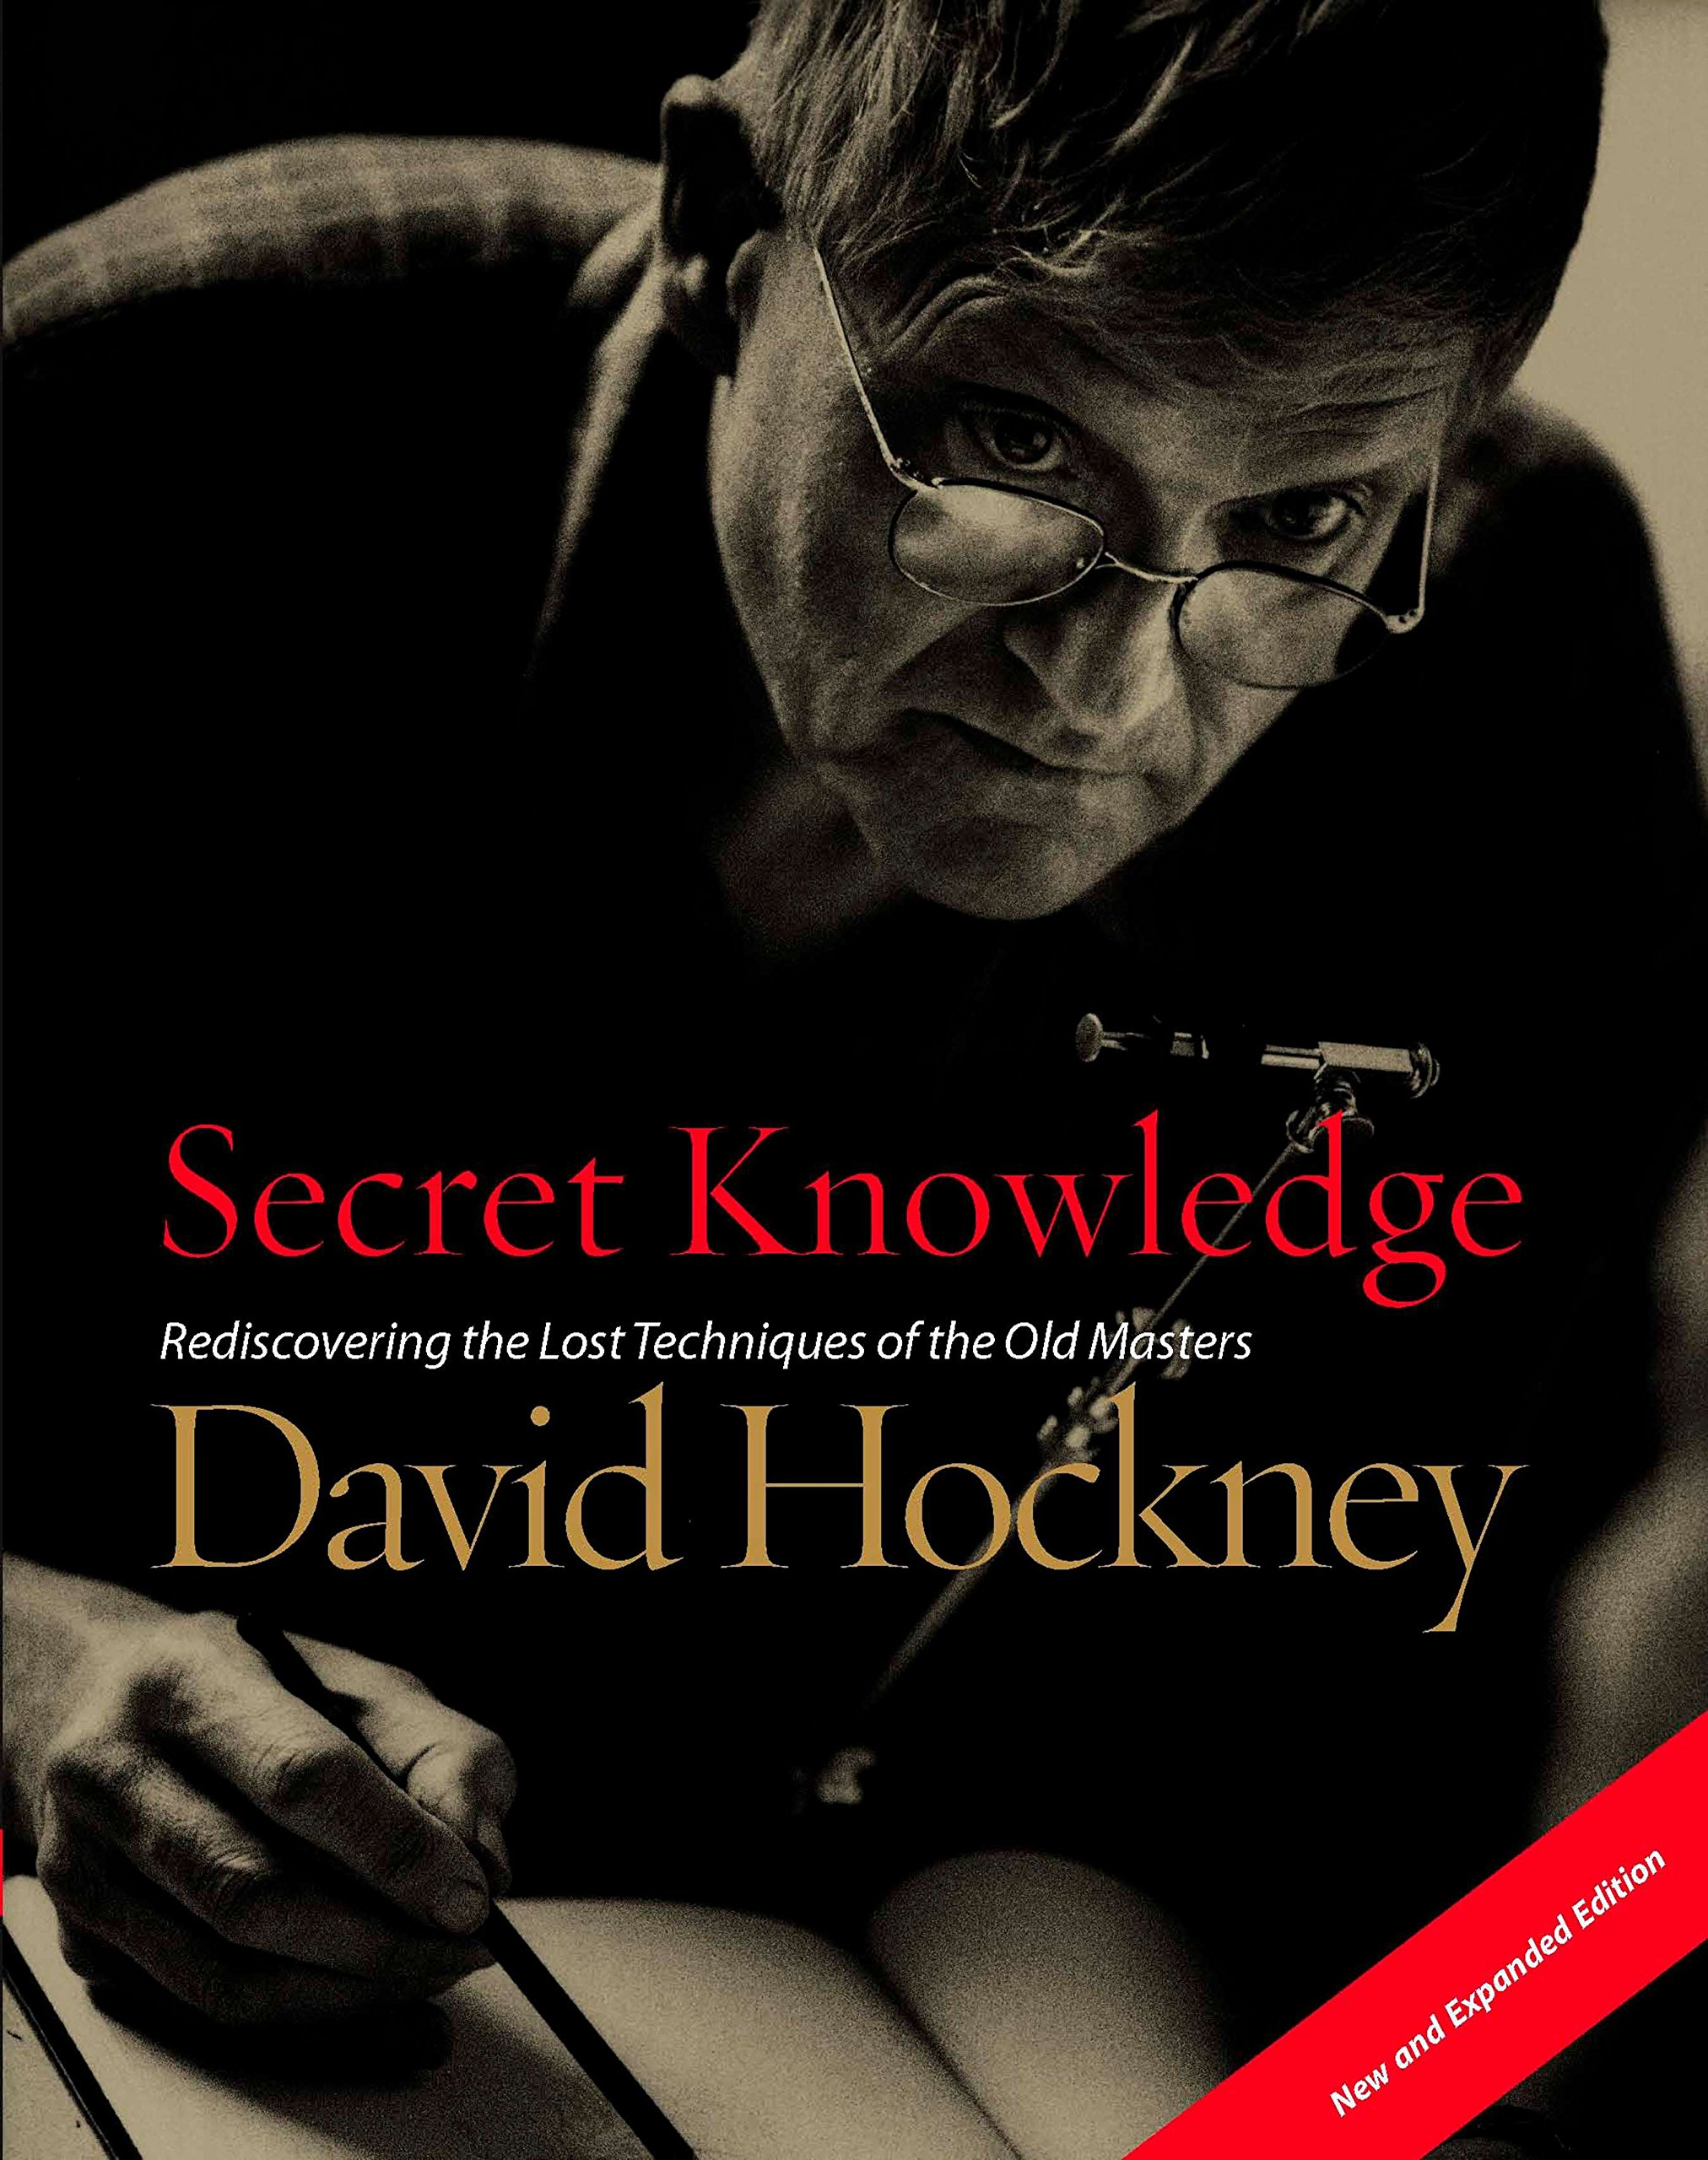 Download Secret Knowledge (New and Expanded Edition): Rediscovering the Lost Techniques of the Old Masters Text fb2 ebook